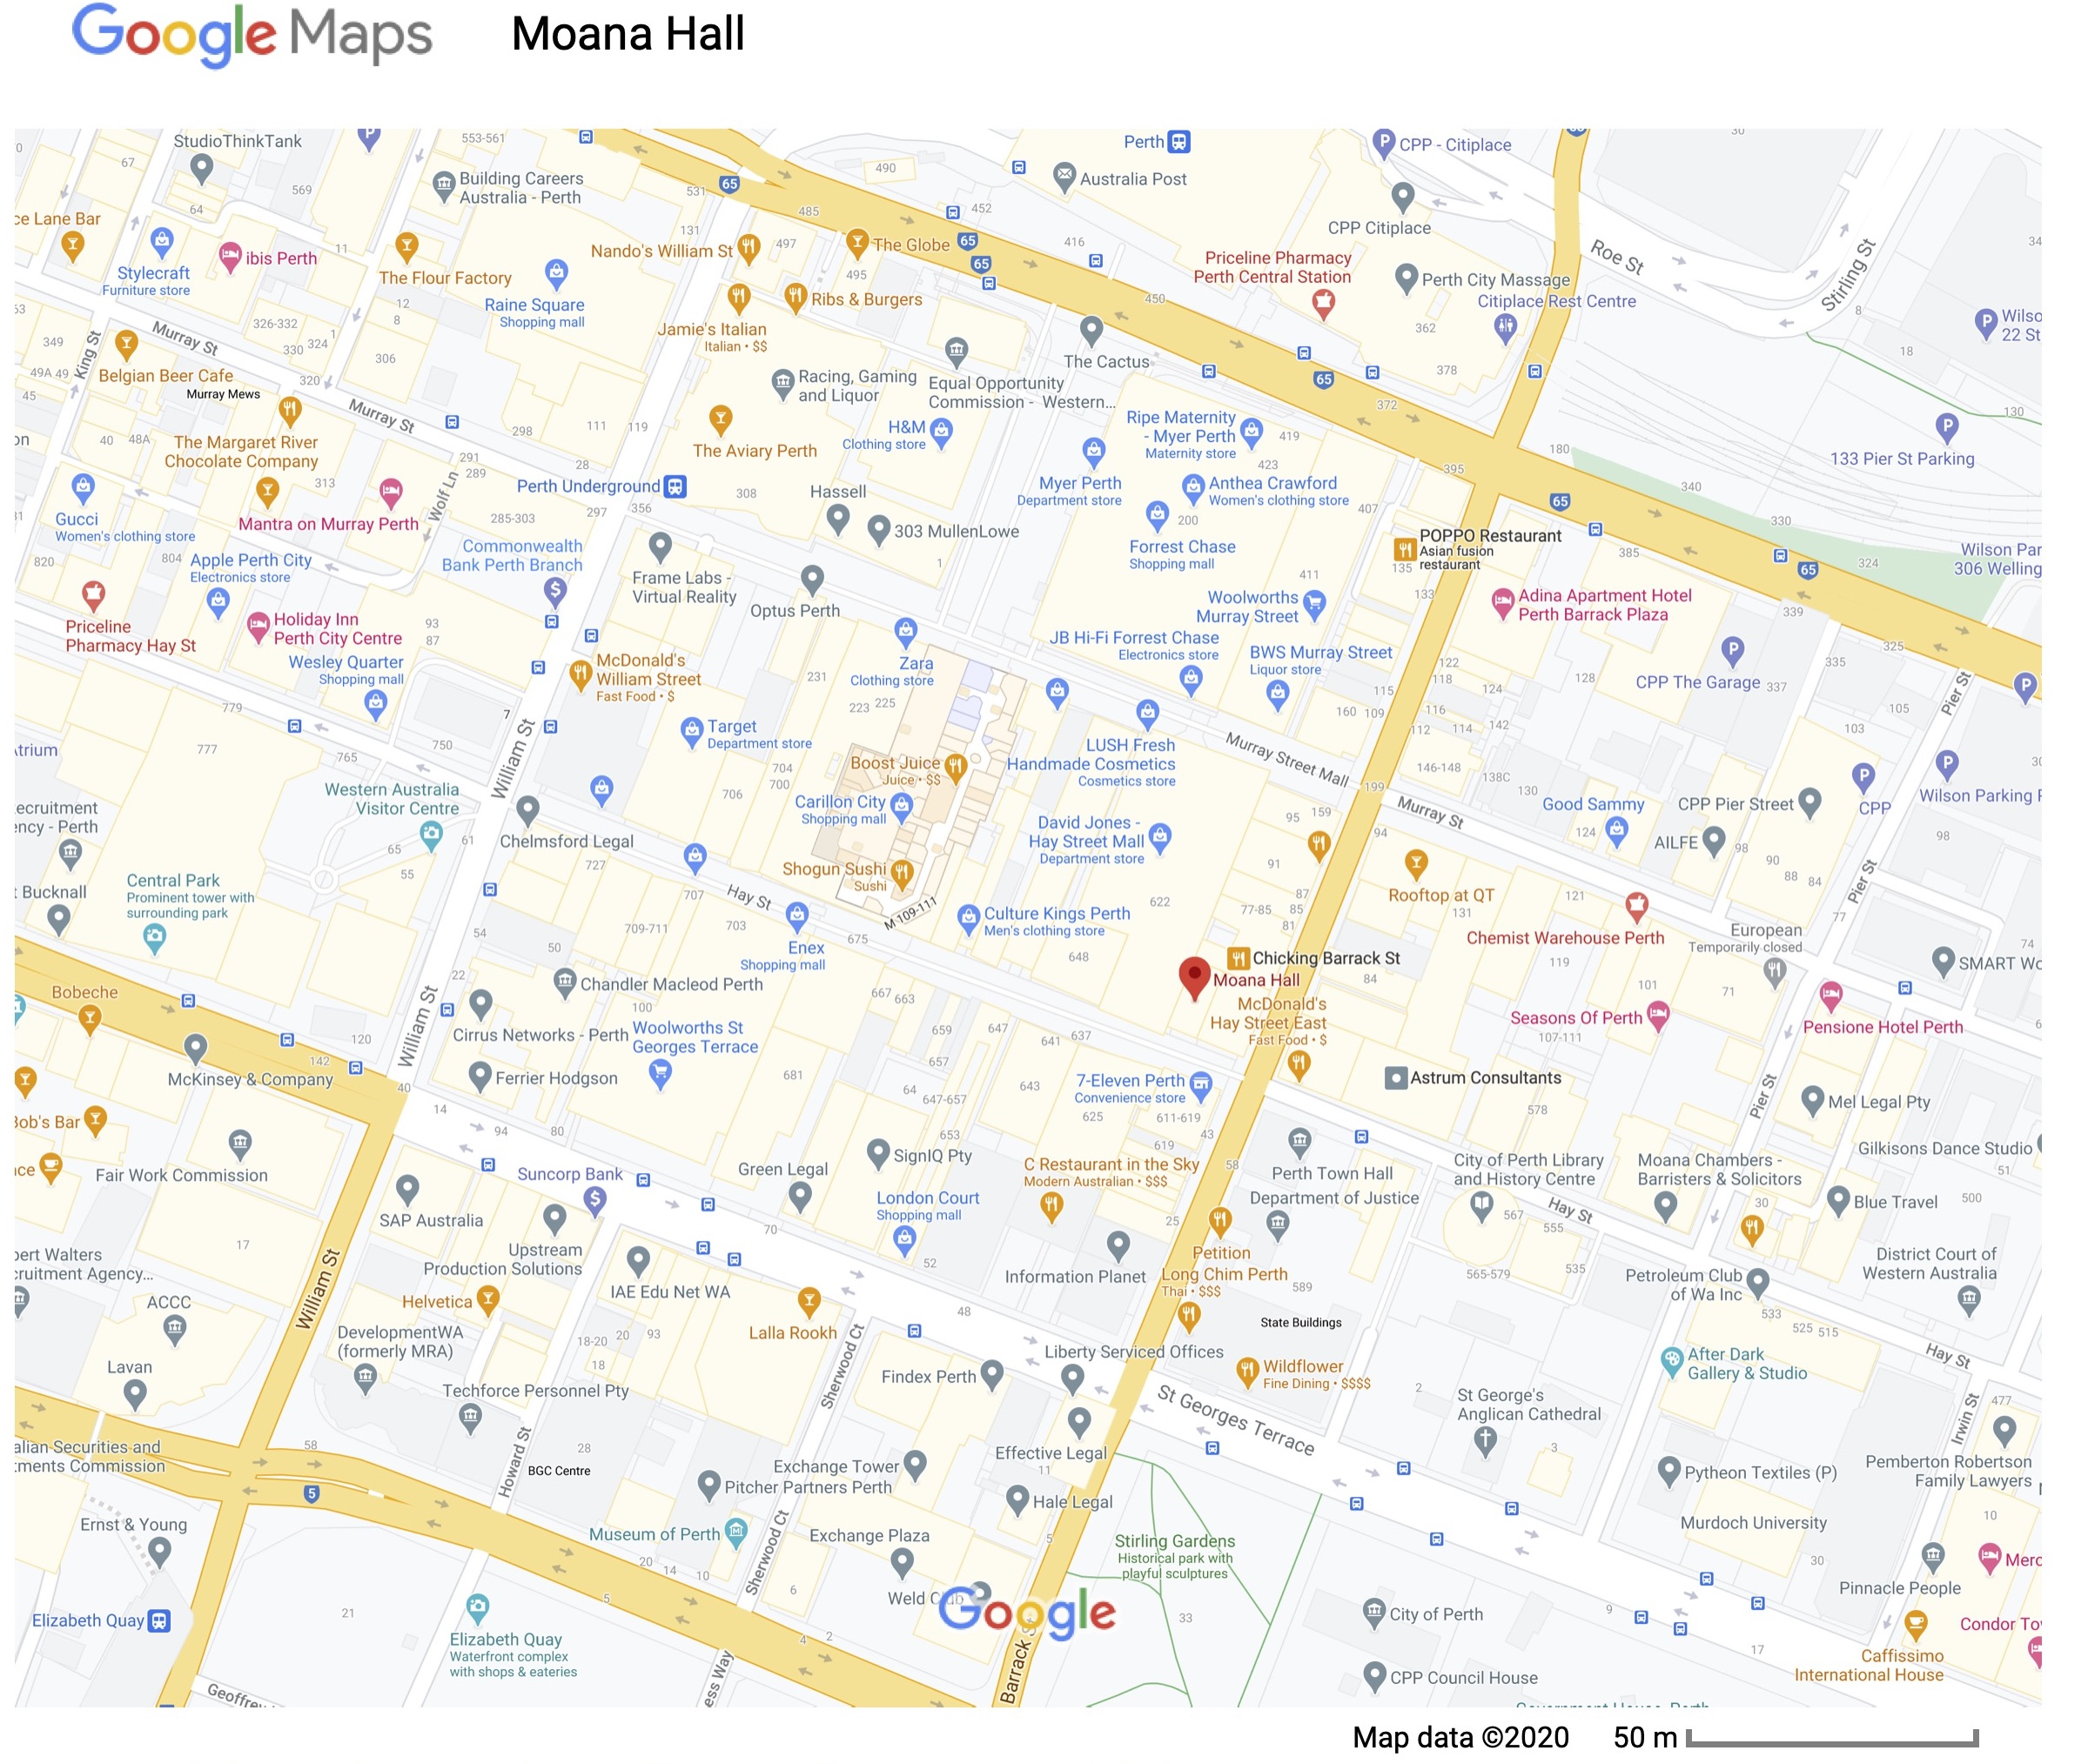 moana-hall-google-maps